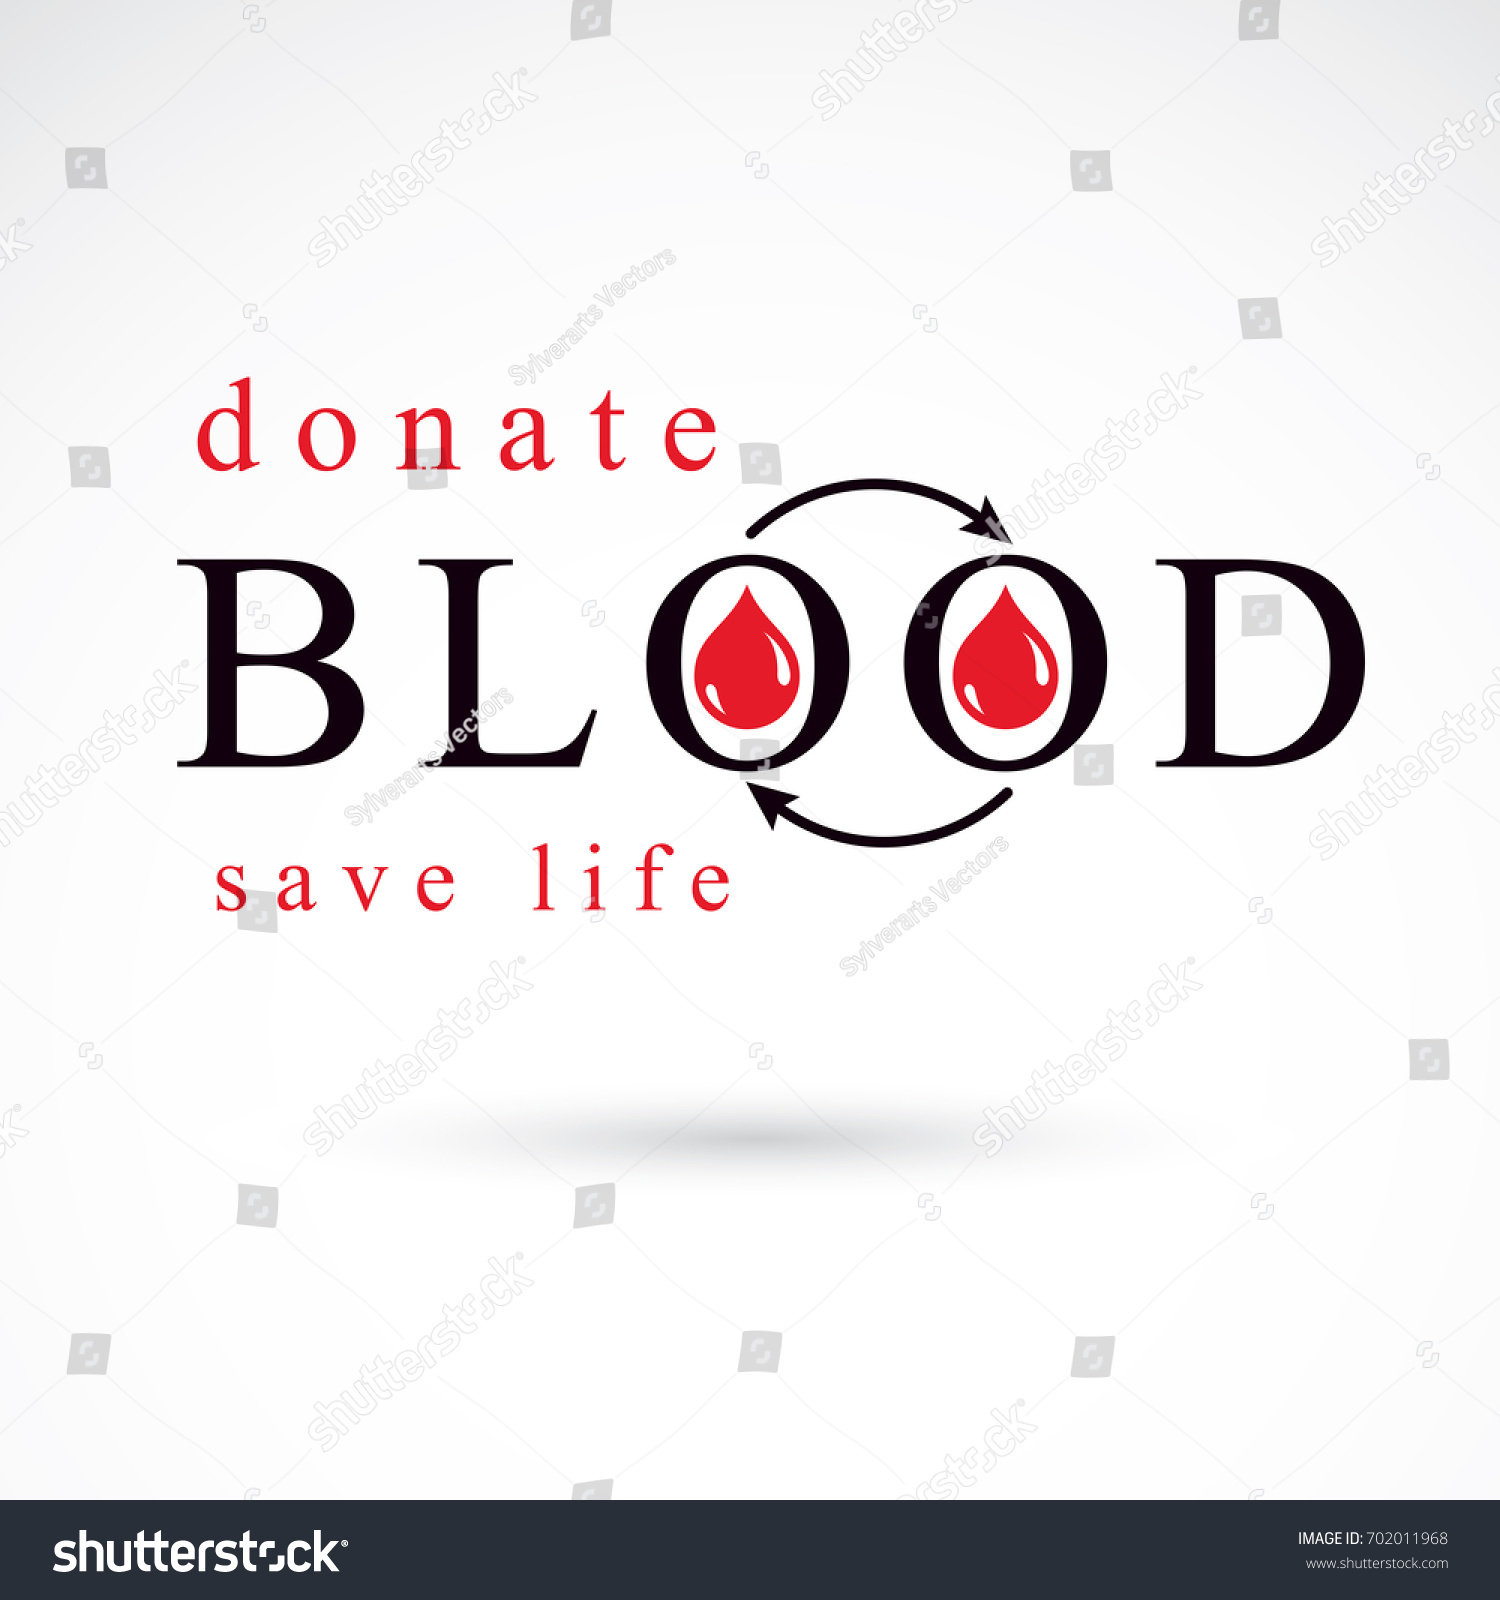 Blood donation symbol created red blood stock illustration blood donation symbol created with red blood drops and arrows blood transfusion metaphor medical buycottarizona